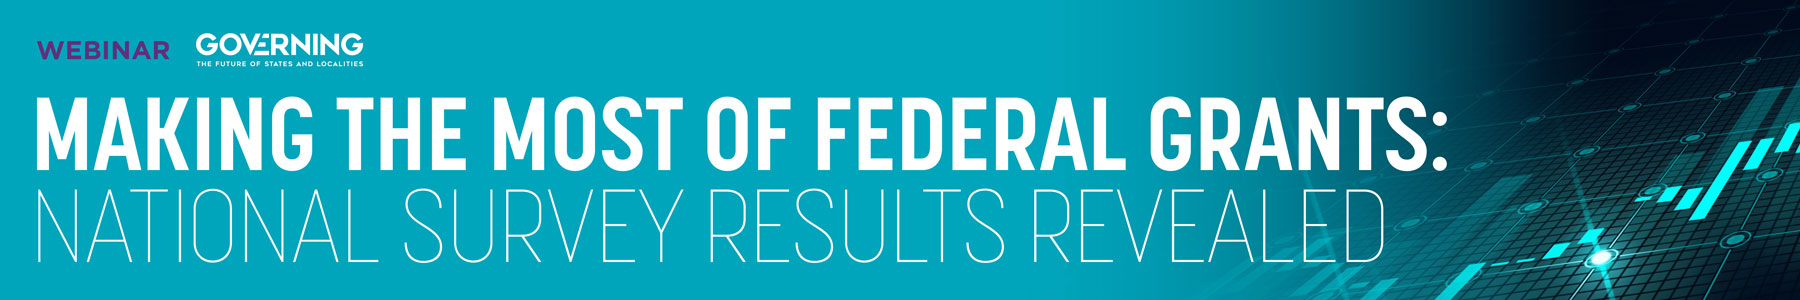 Making the Most of Federal Grants: National Survey Results Revealed